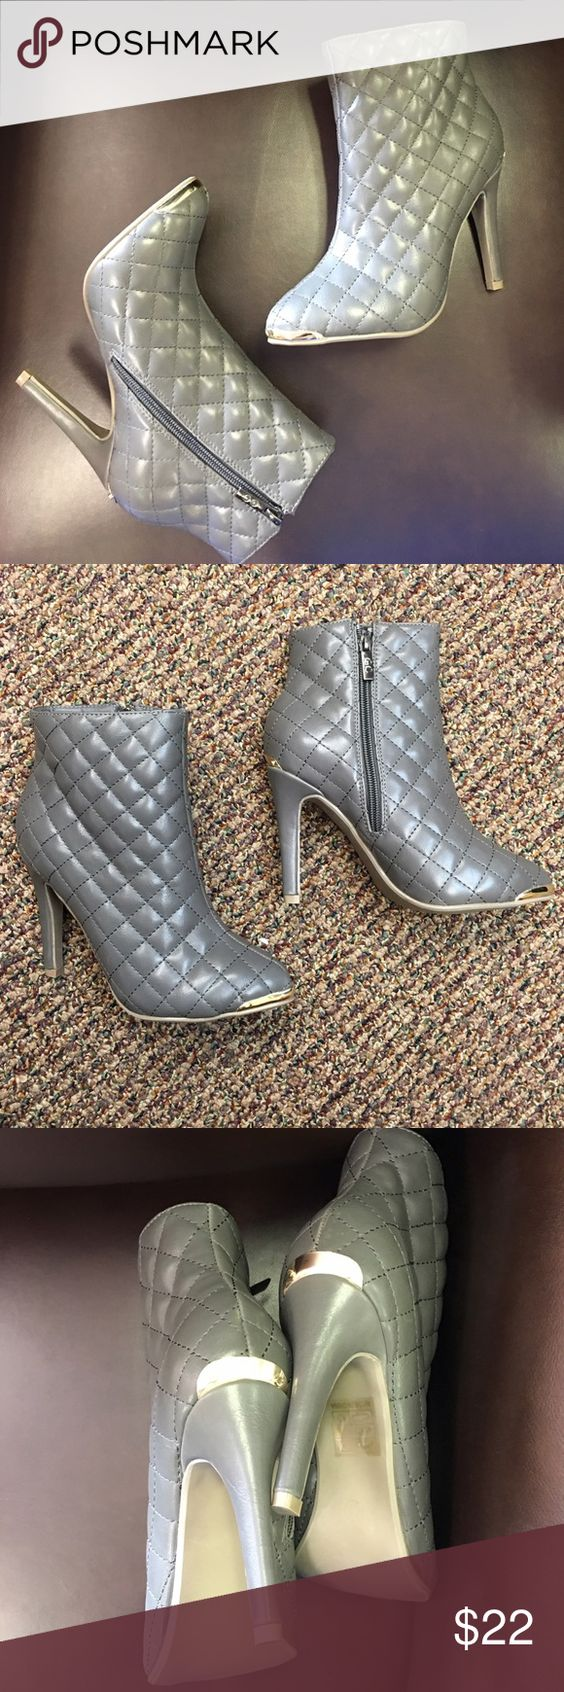 "GC Shoes, gray quilted Petra zip ankle boots Store display. Minor scuffs on the metal heel and toe detail. 4"" thin heel . Medium width. Synthetic material GC Shoes Shoes Heeled Boots"